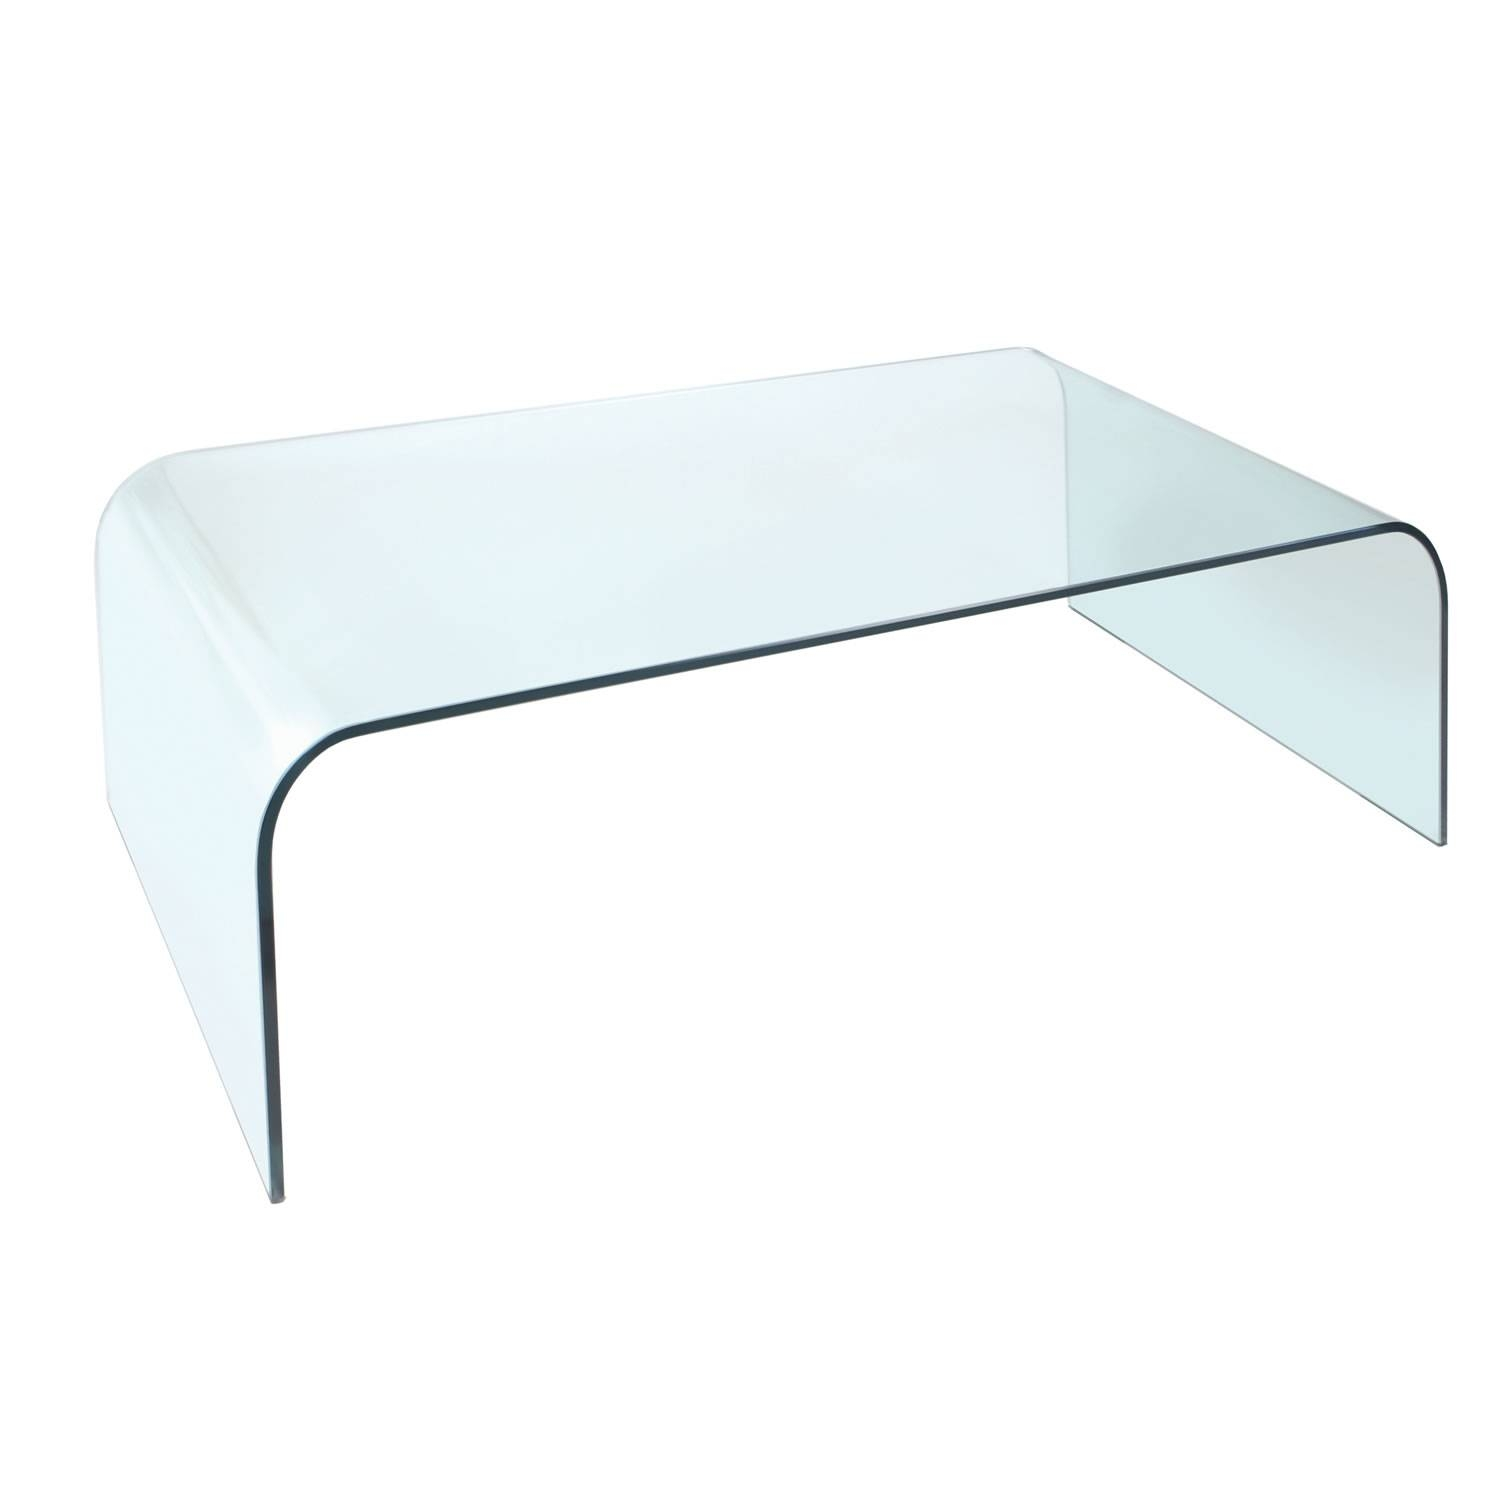 Table. Transparent Coffee Table - Home Interior Design with regard to Transparent Glass Coffee Tables (Image 26 of 30)